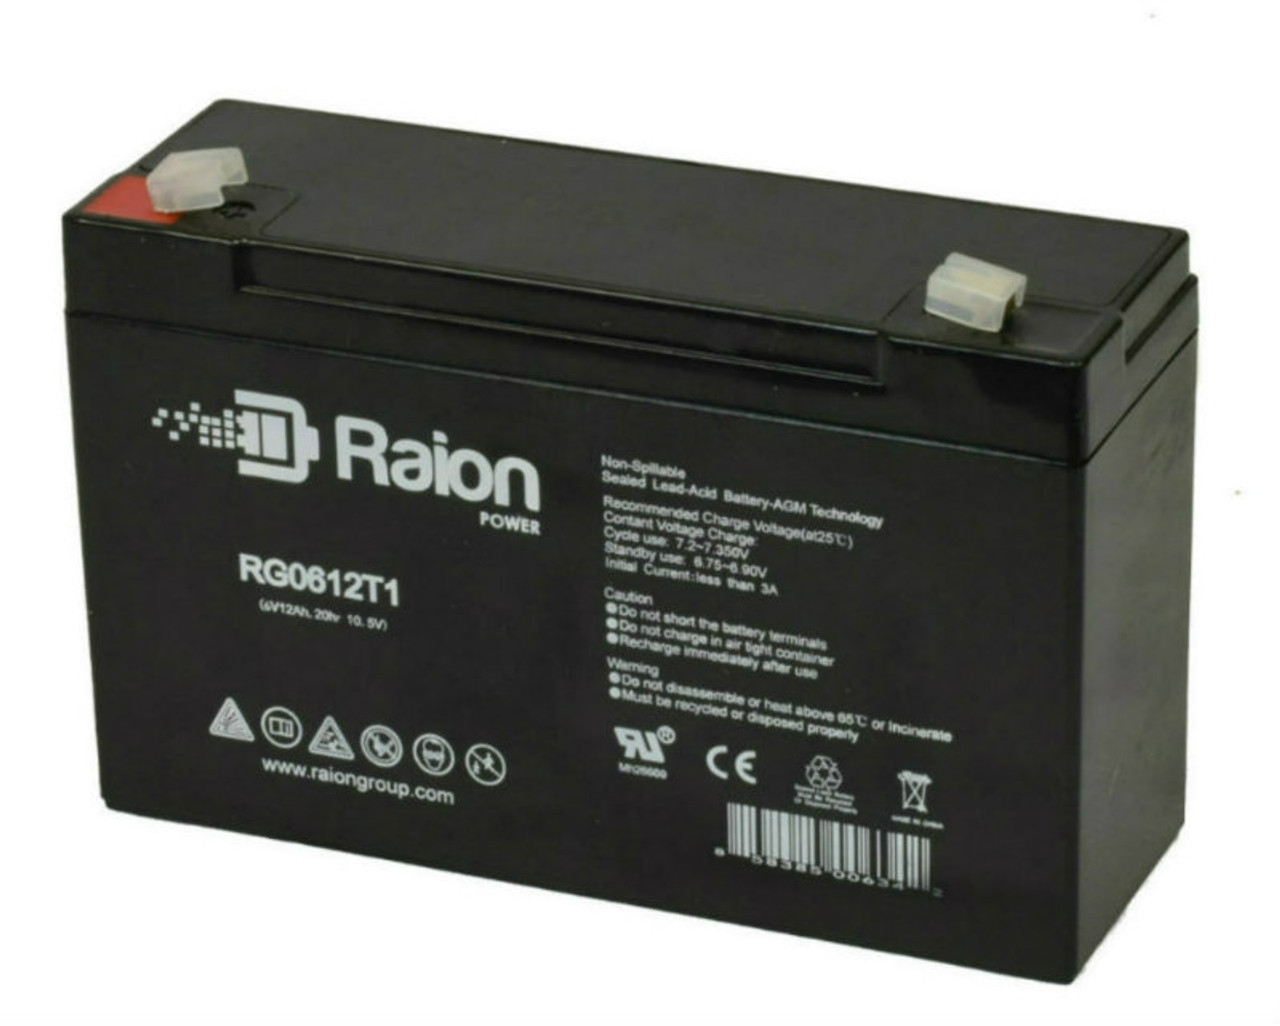 Raion Power RG06120T1 Replacement Battery Pack for Sure-Lites SL2603 emergency light